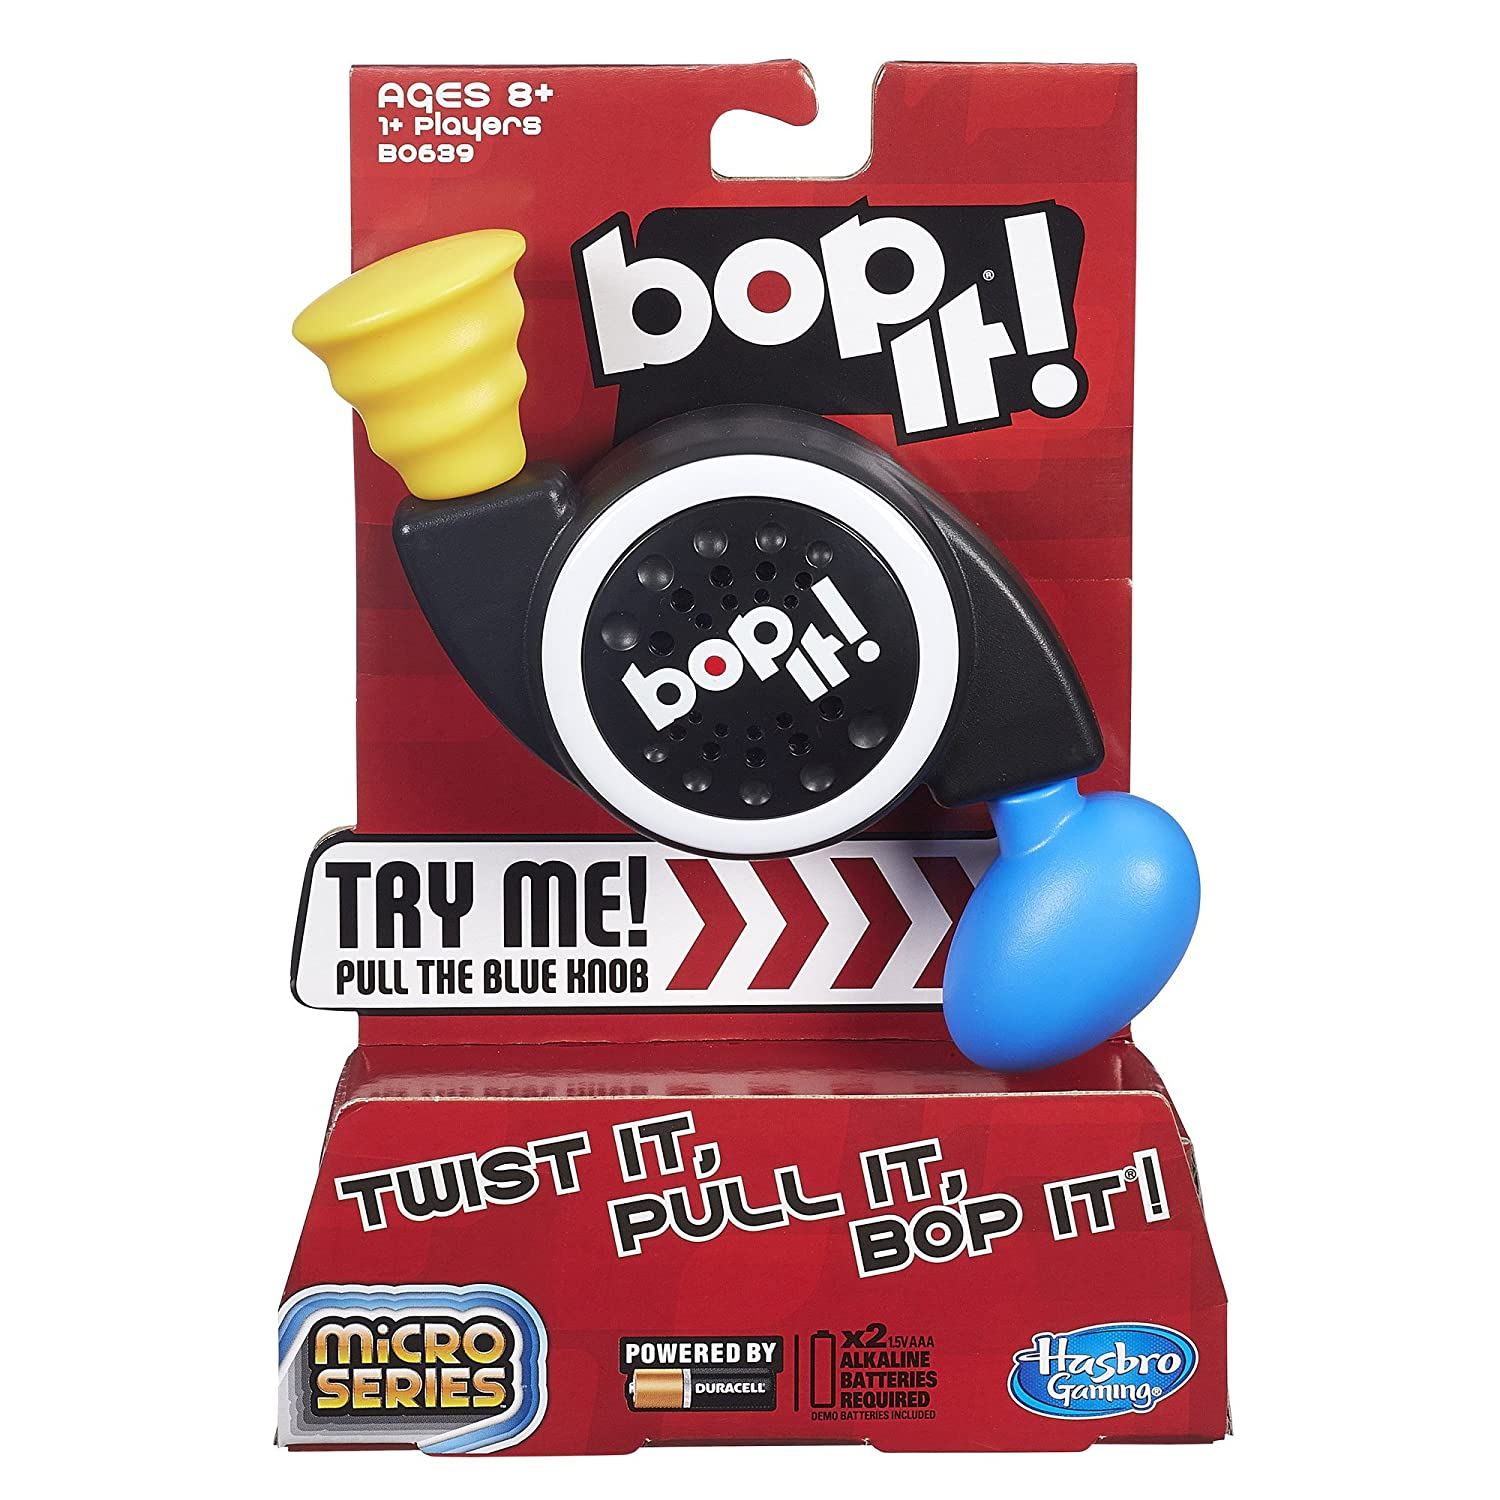 Hasbro Bop It Micro Series Game